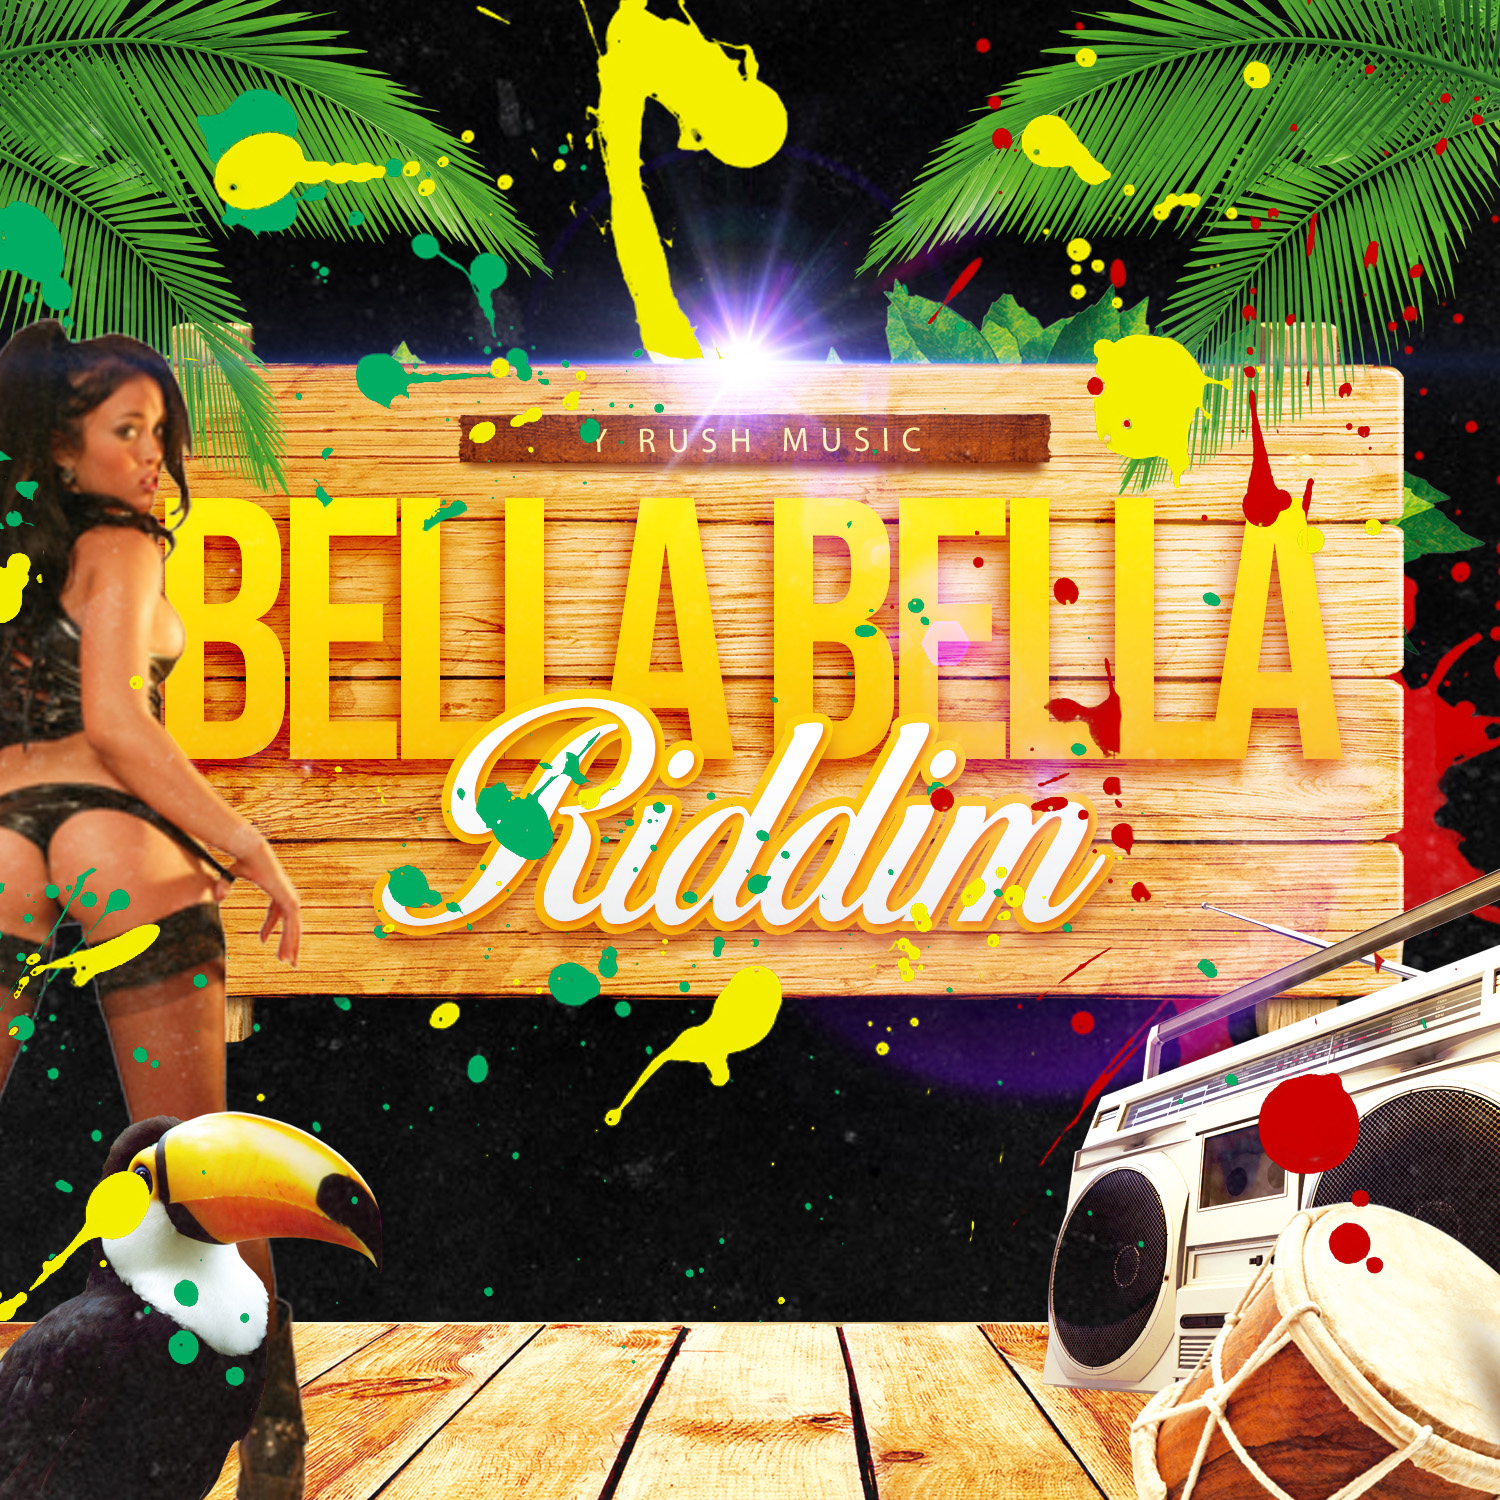 Yrushmusic Presents The Bella Bella Riddim